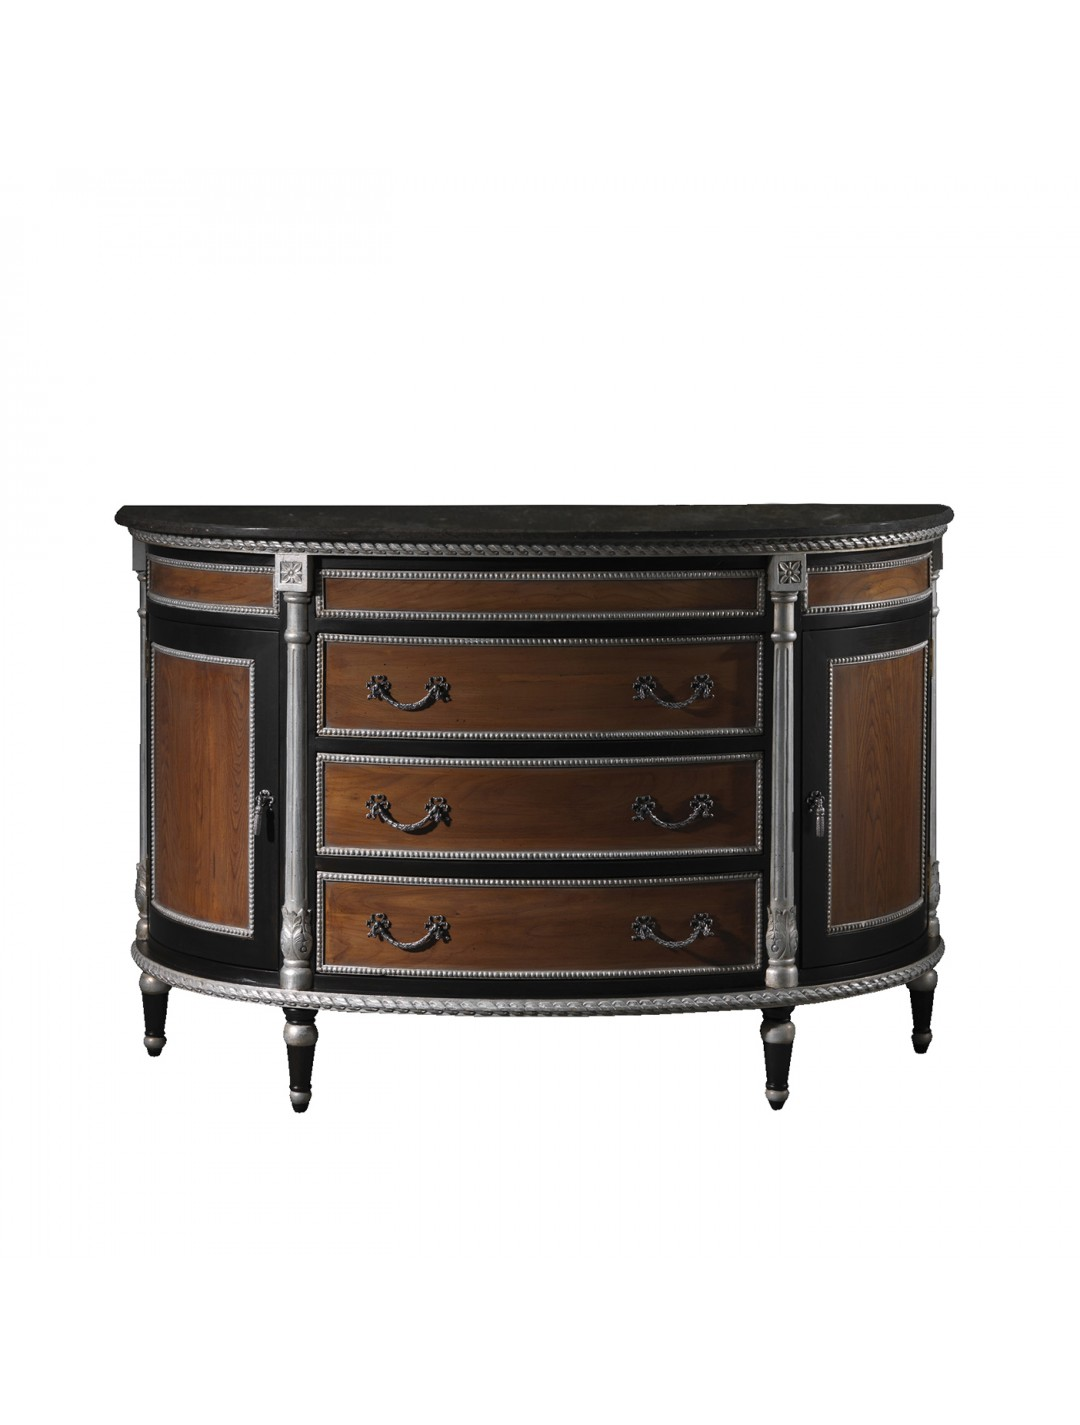 ANGELES SEMICIRCULAR CHEST OF DRAWERS